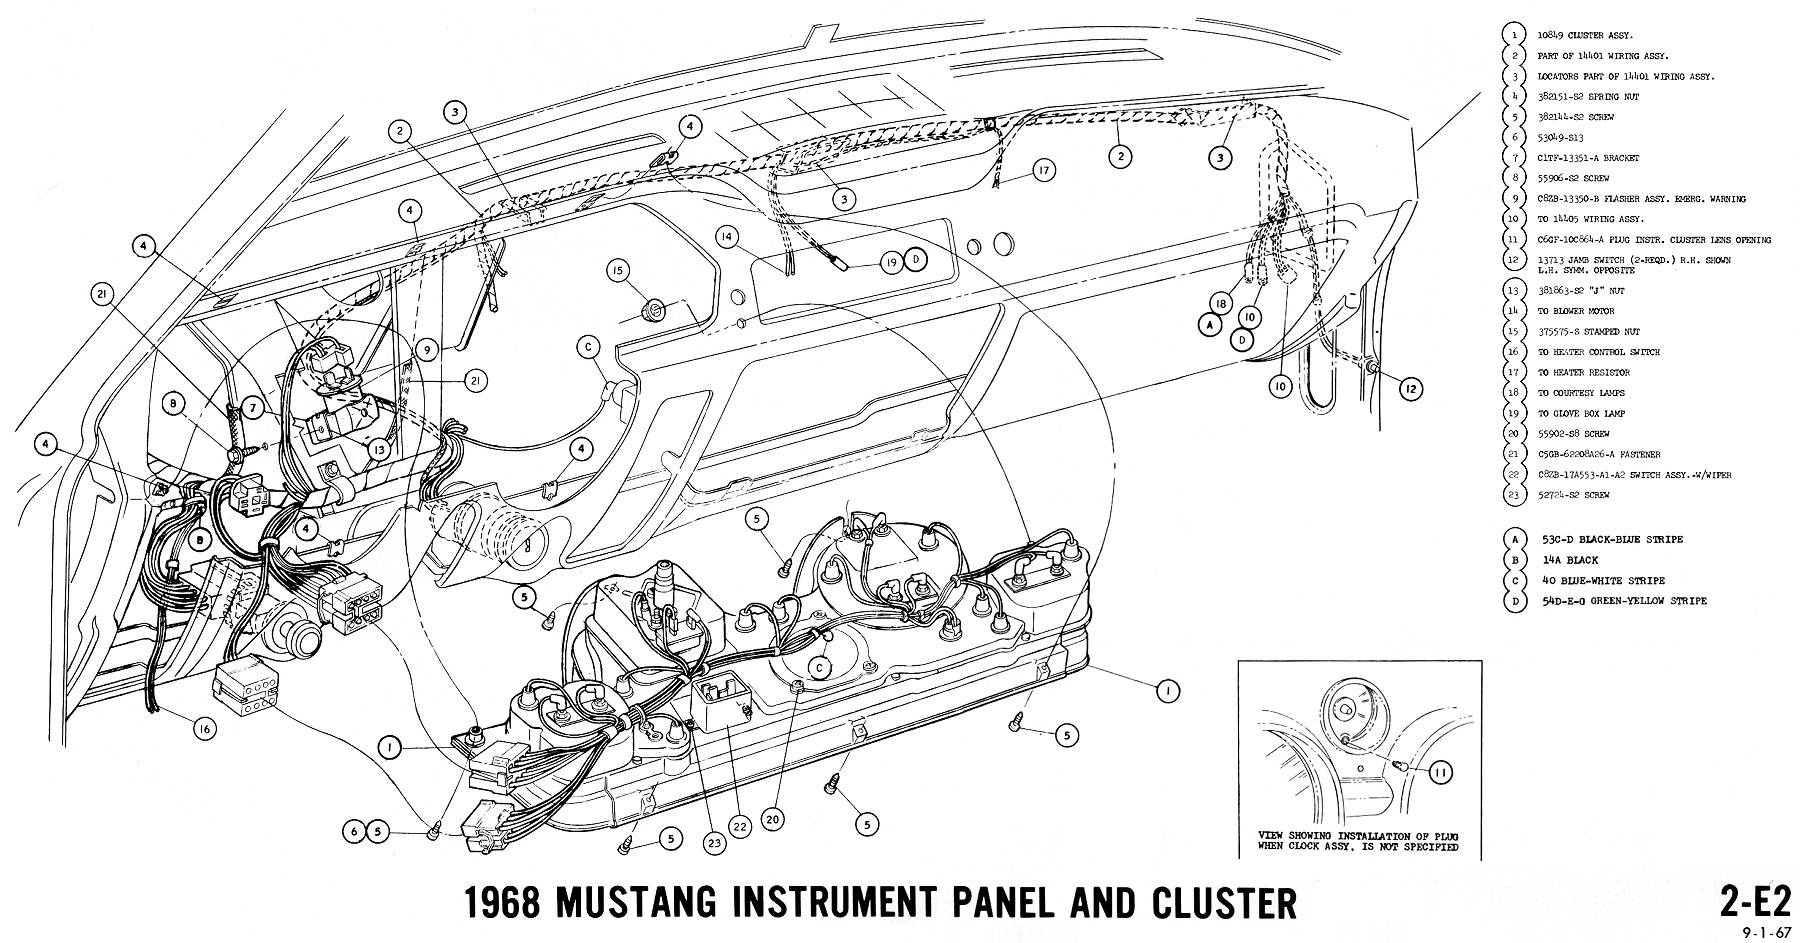 1968 Mustang Wiring Diagrams on 1965 mustang wiring harness diagram